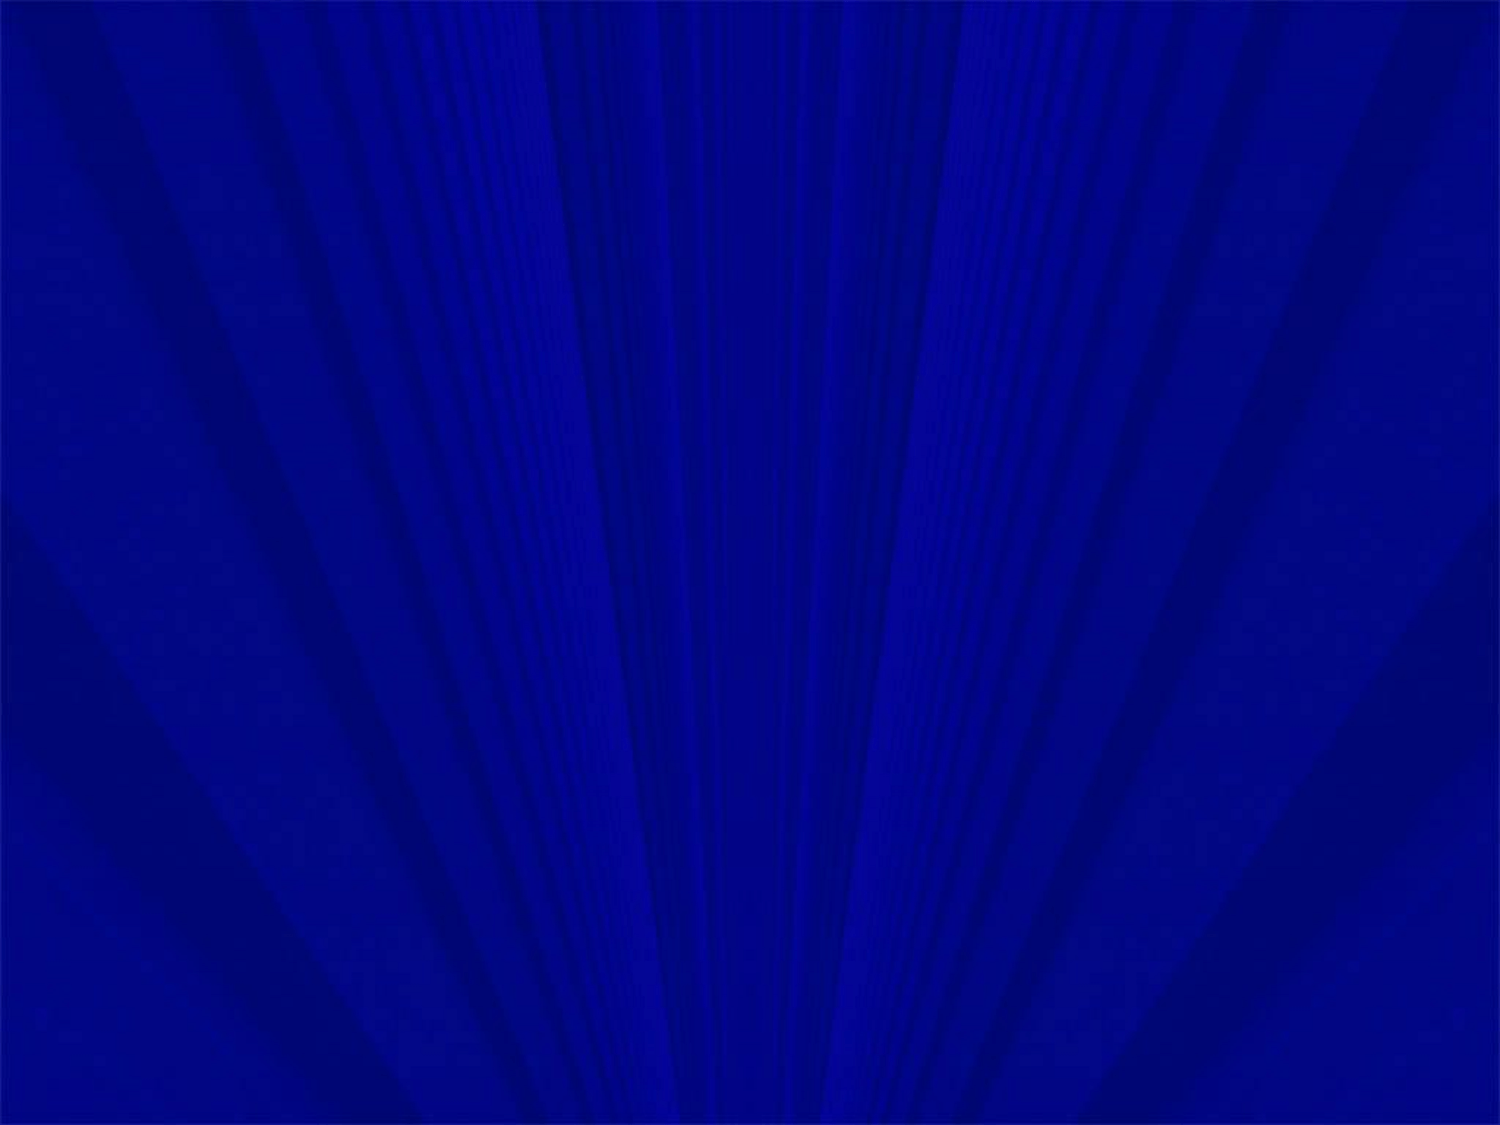 Royal Blue Background Wallpaper  All HD Wallpapers